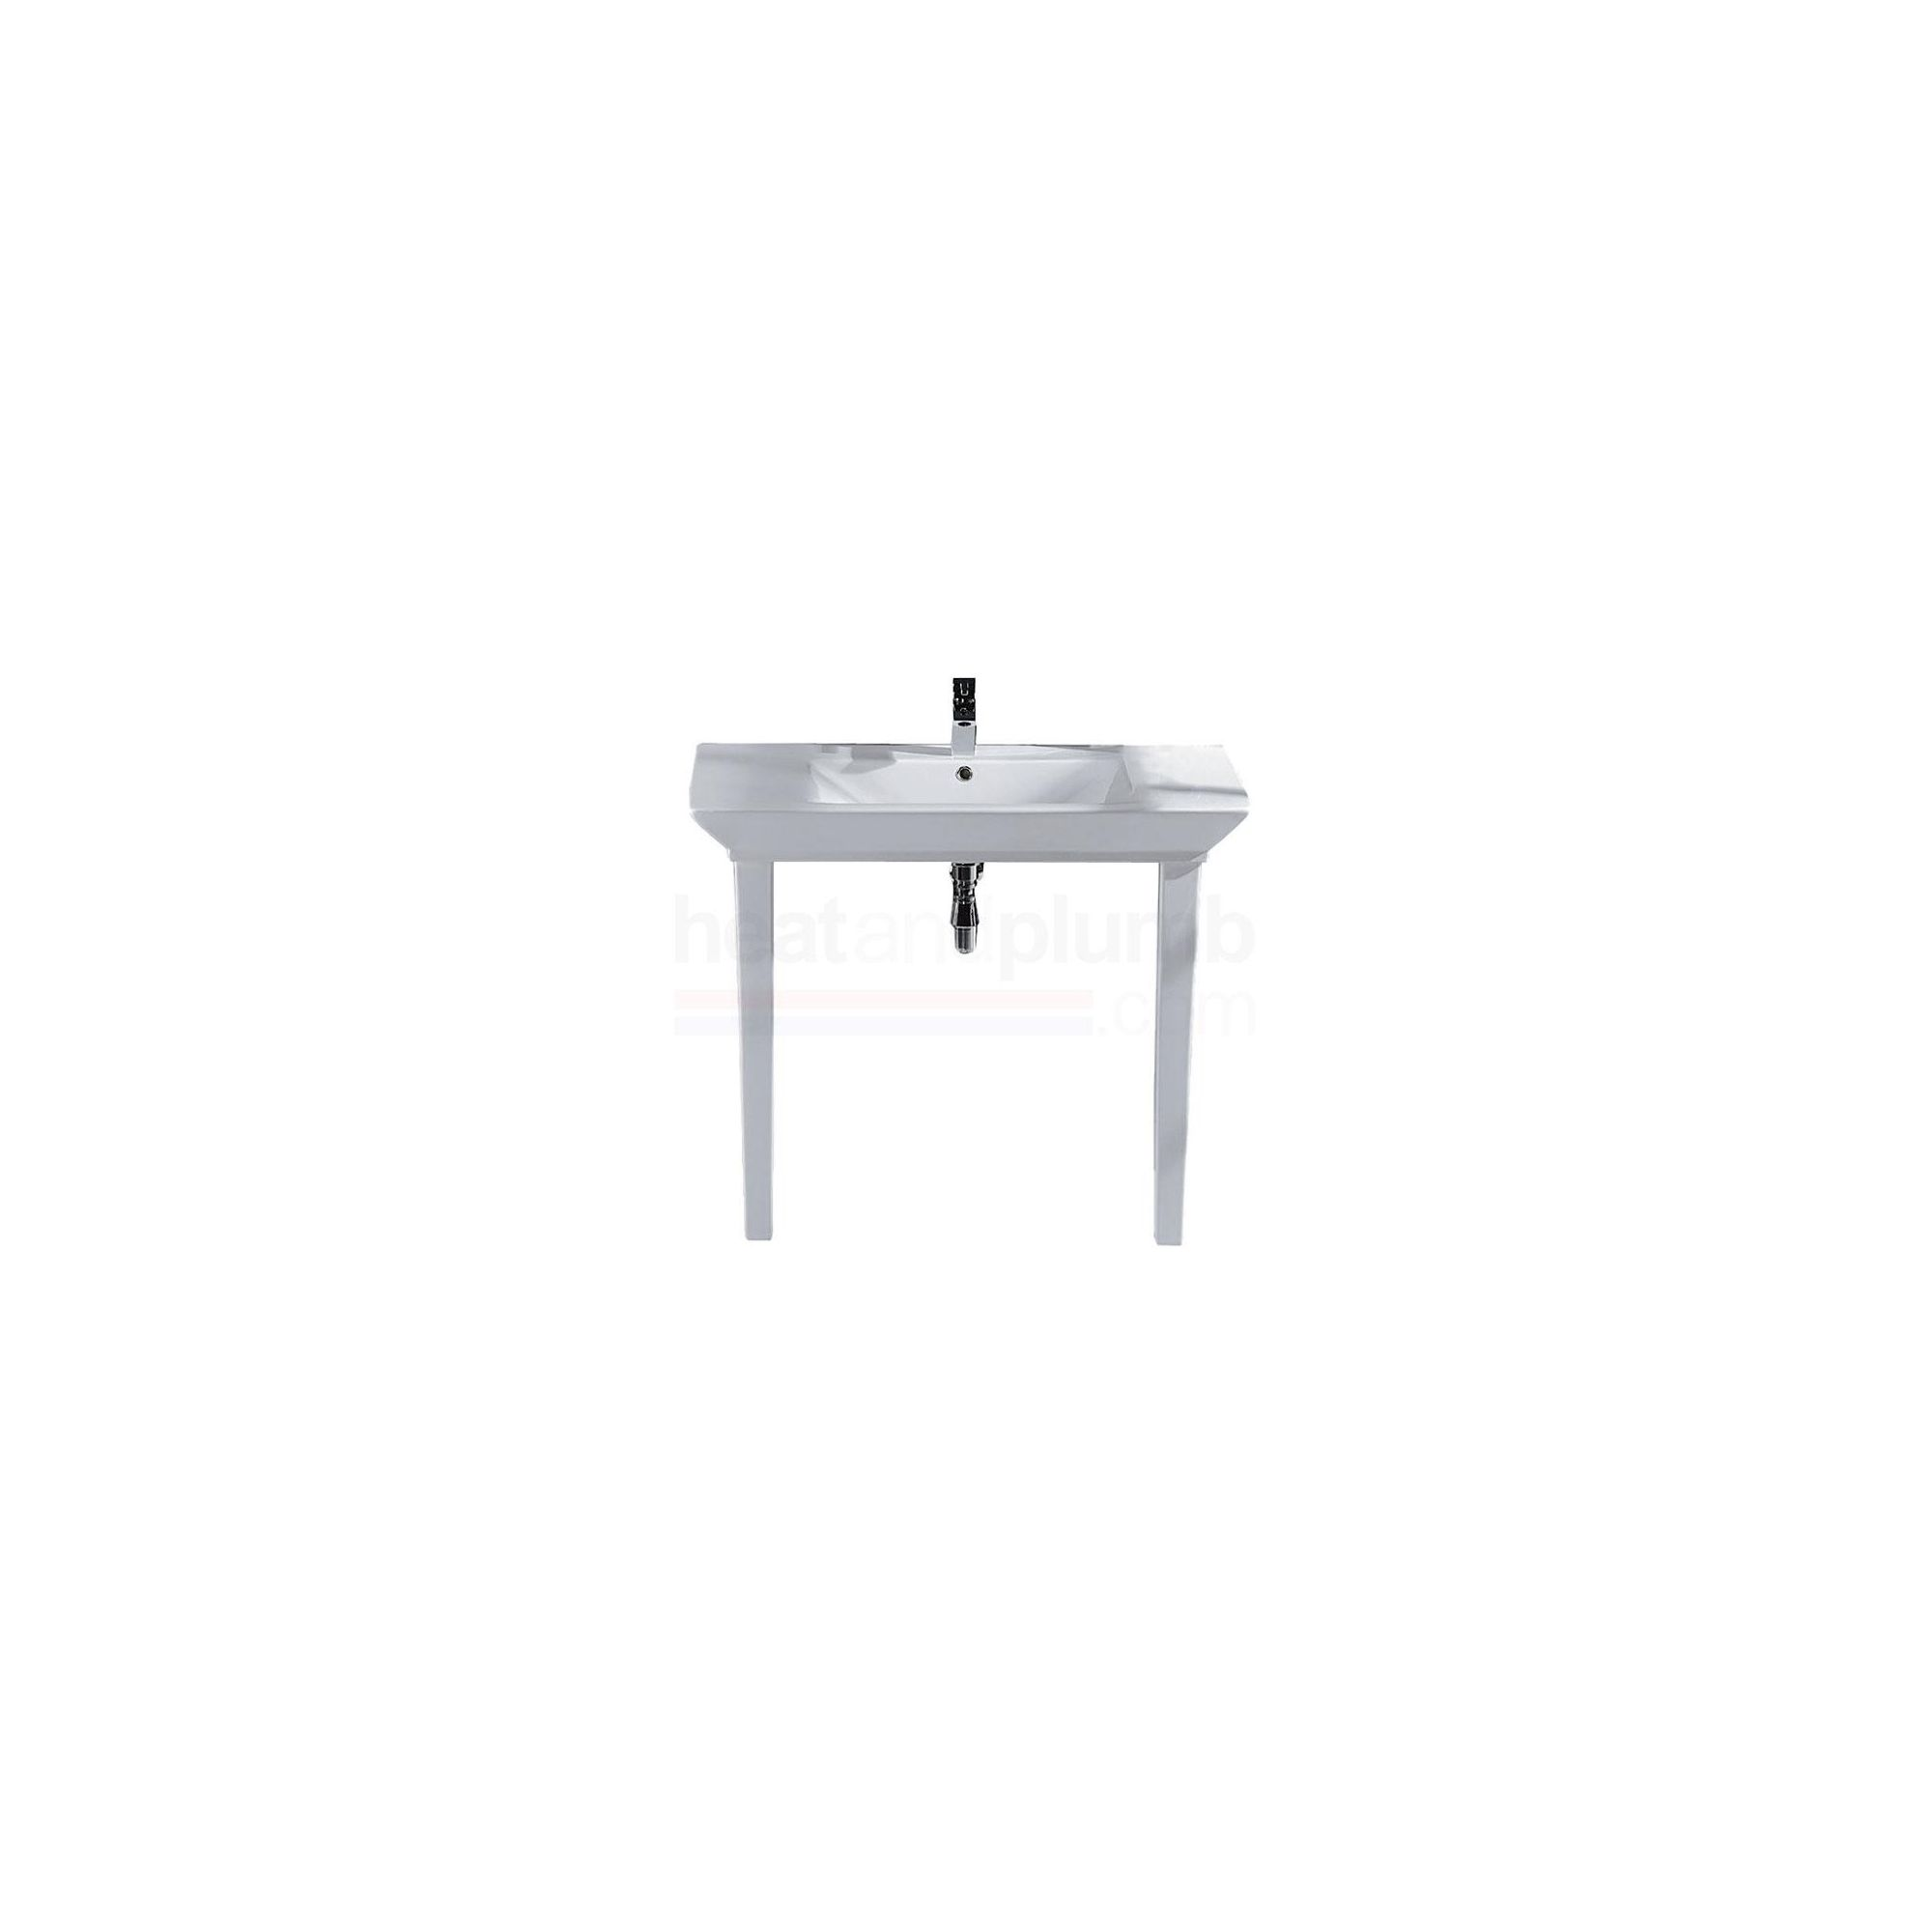 RAK Opulence White 'His' 1 Piece Countertop Basin with Legs 1000mm Wide at Tesco Direct